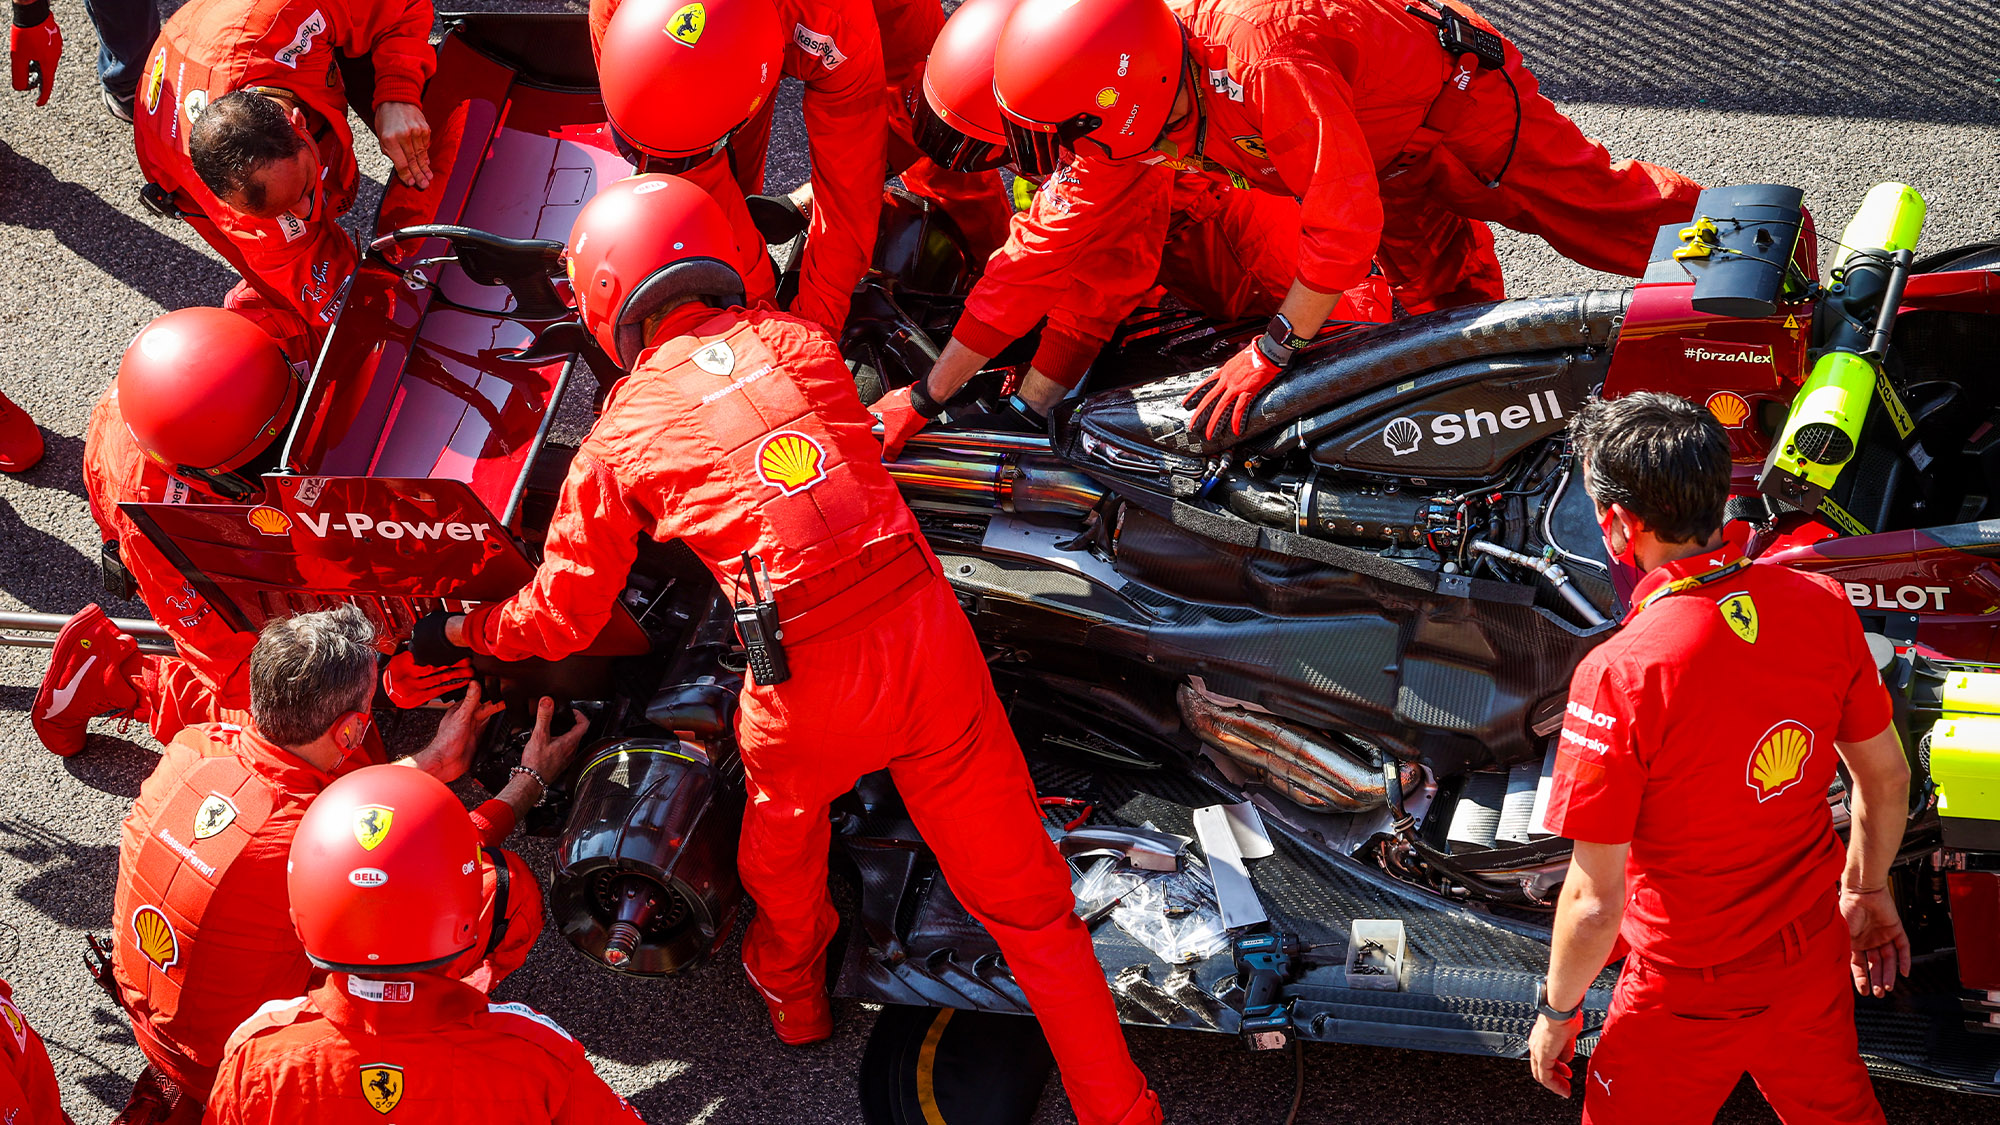 Ferrari SF1000 hybrid engine exposed at Imola for the 2020 Emilia Romagna F1 Grand Prix